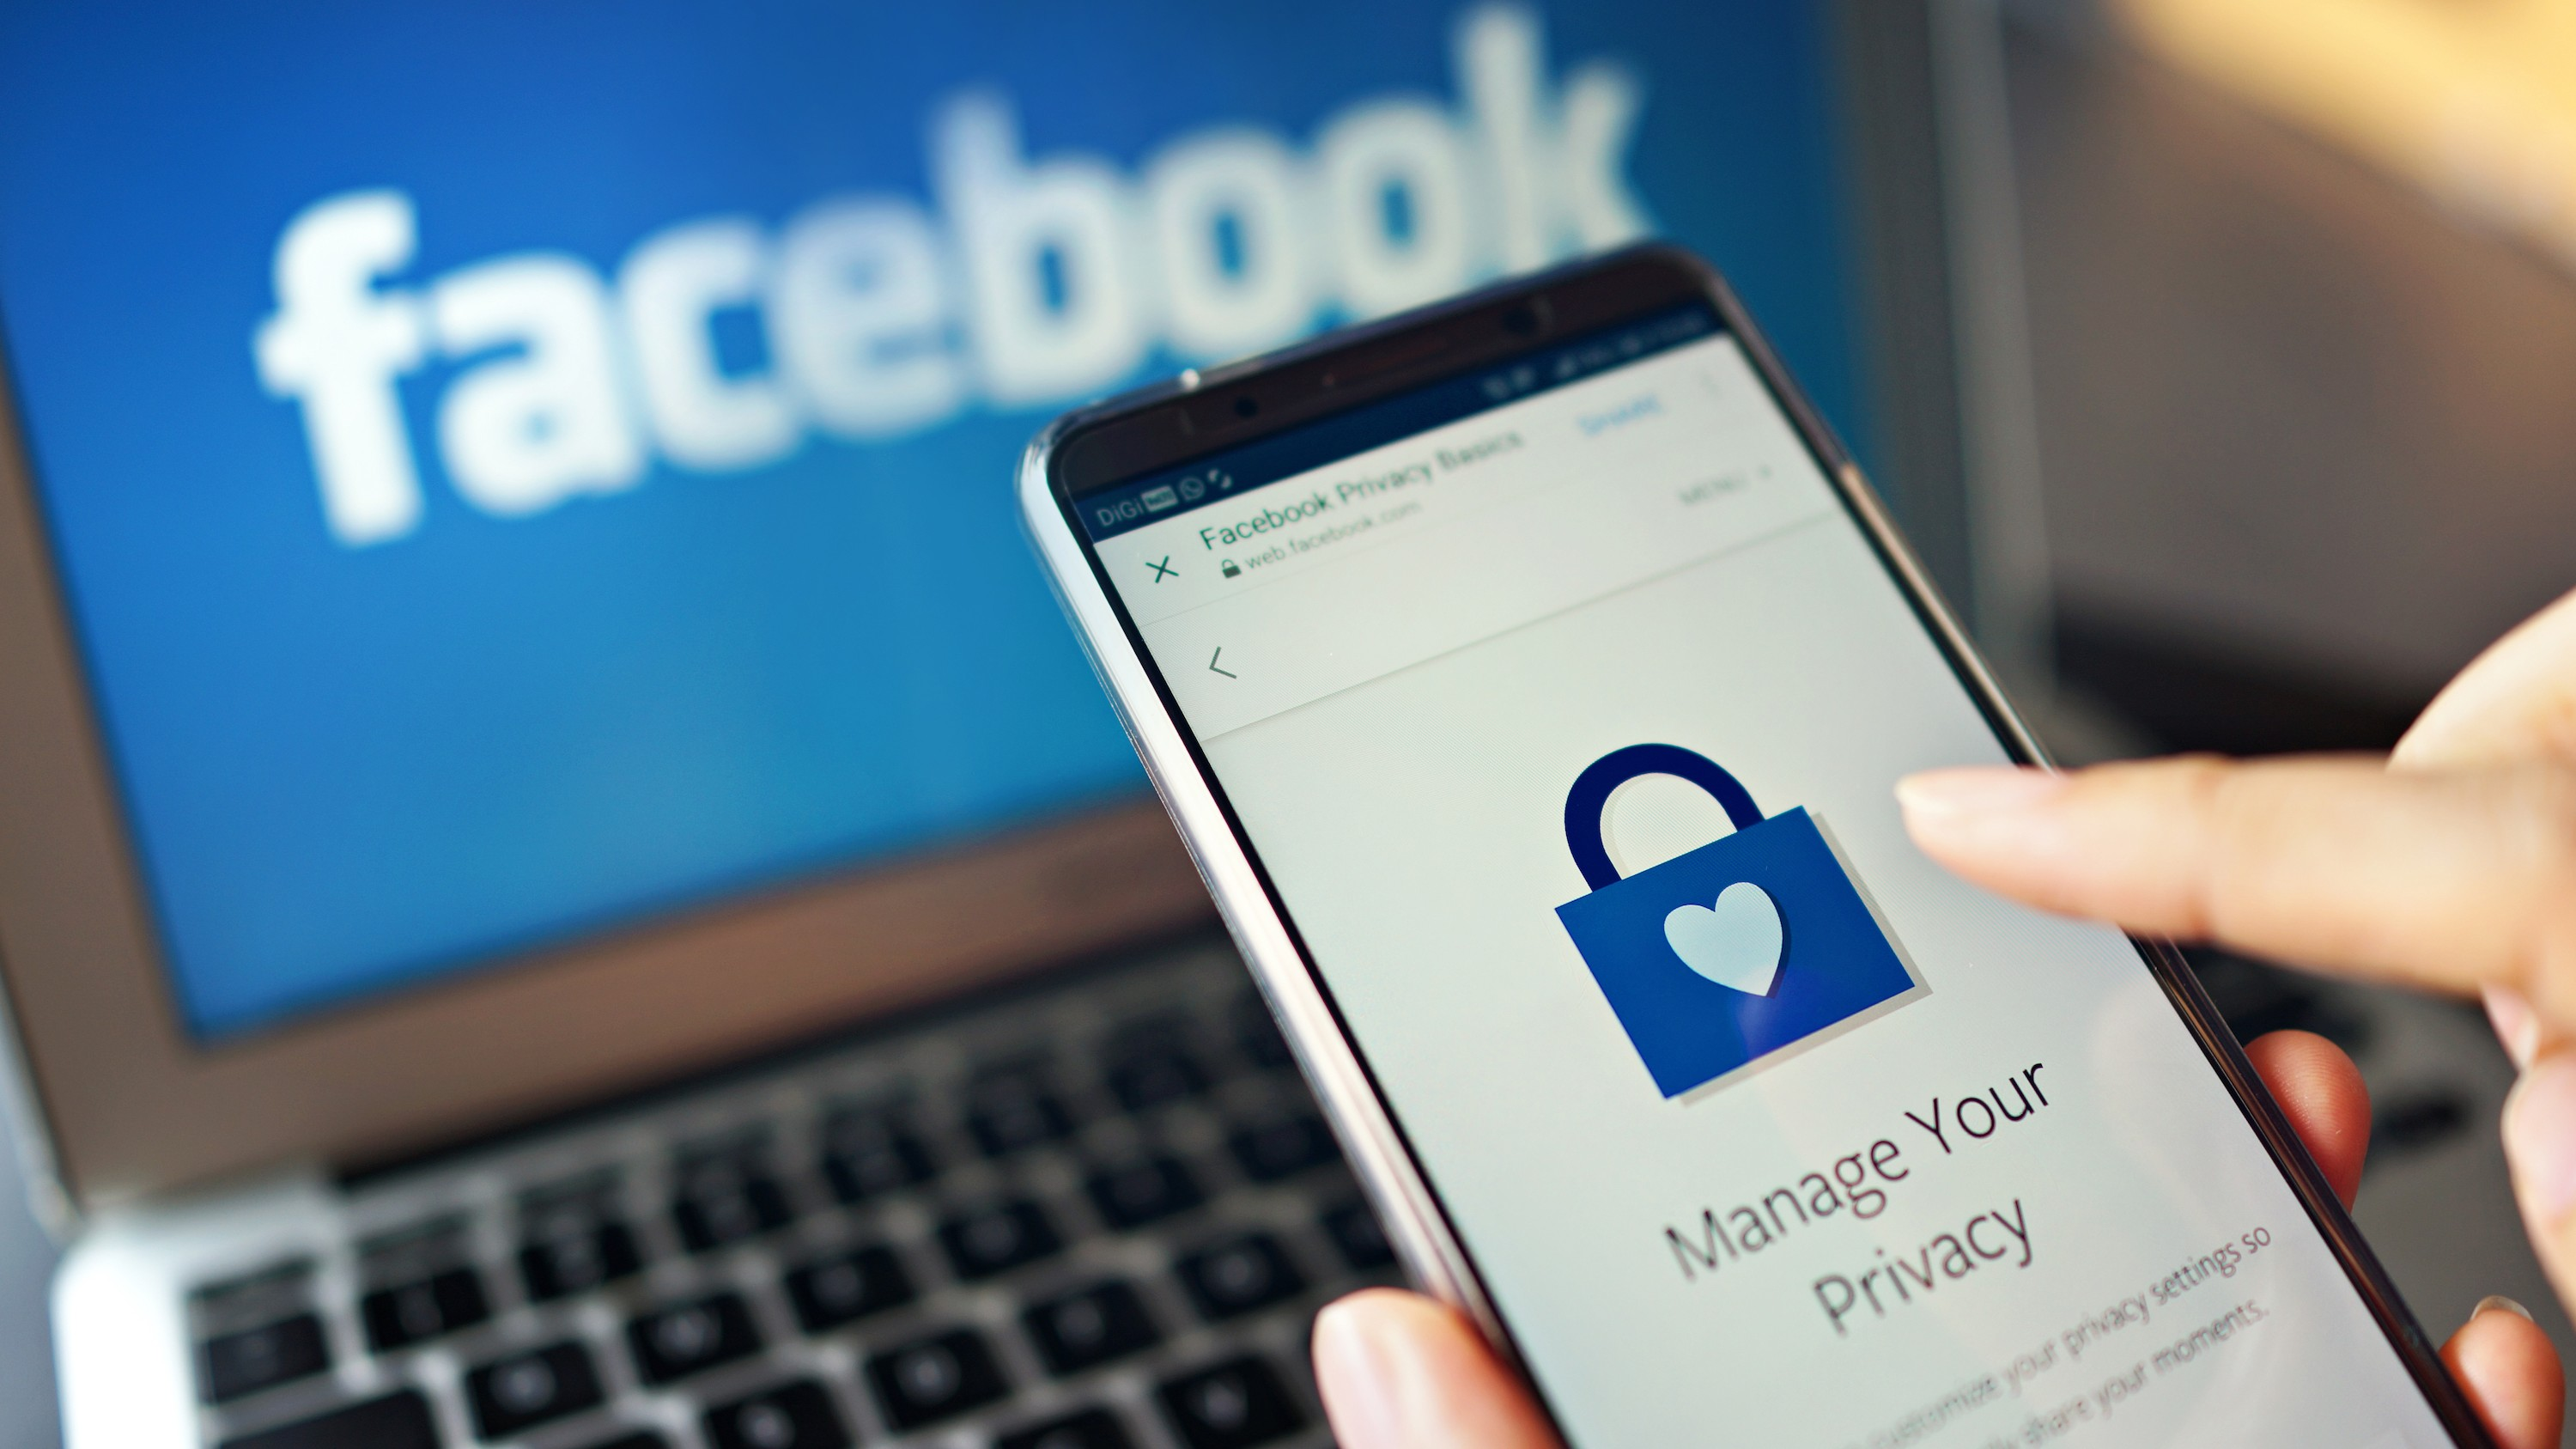 Facebook's Phone Number Policy Could Push Users to Not Trust Two-Factor Authentication